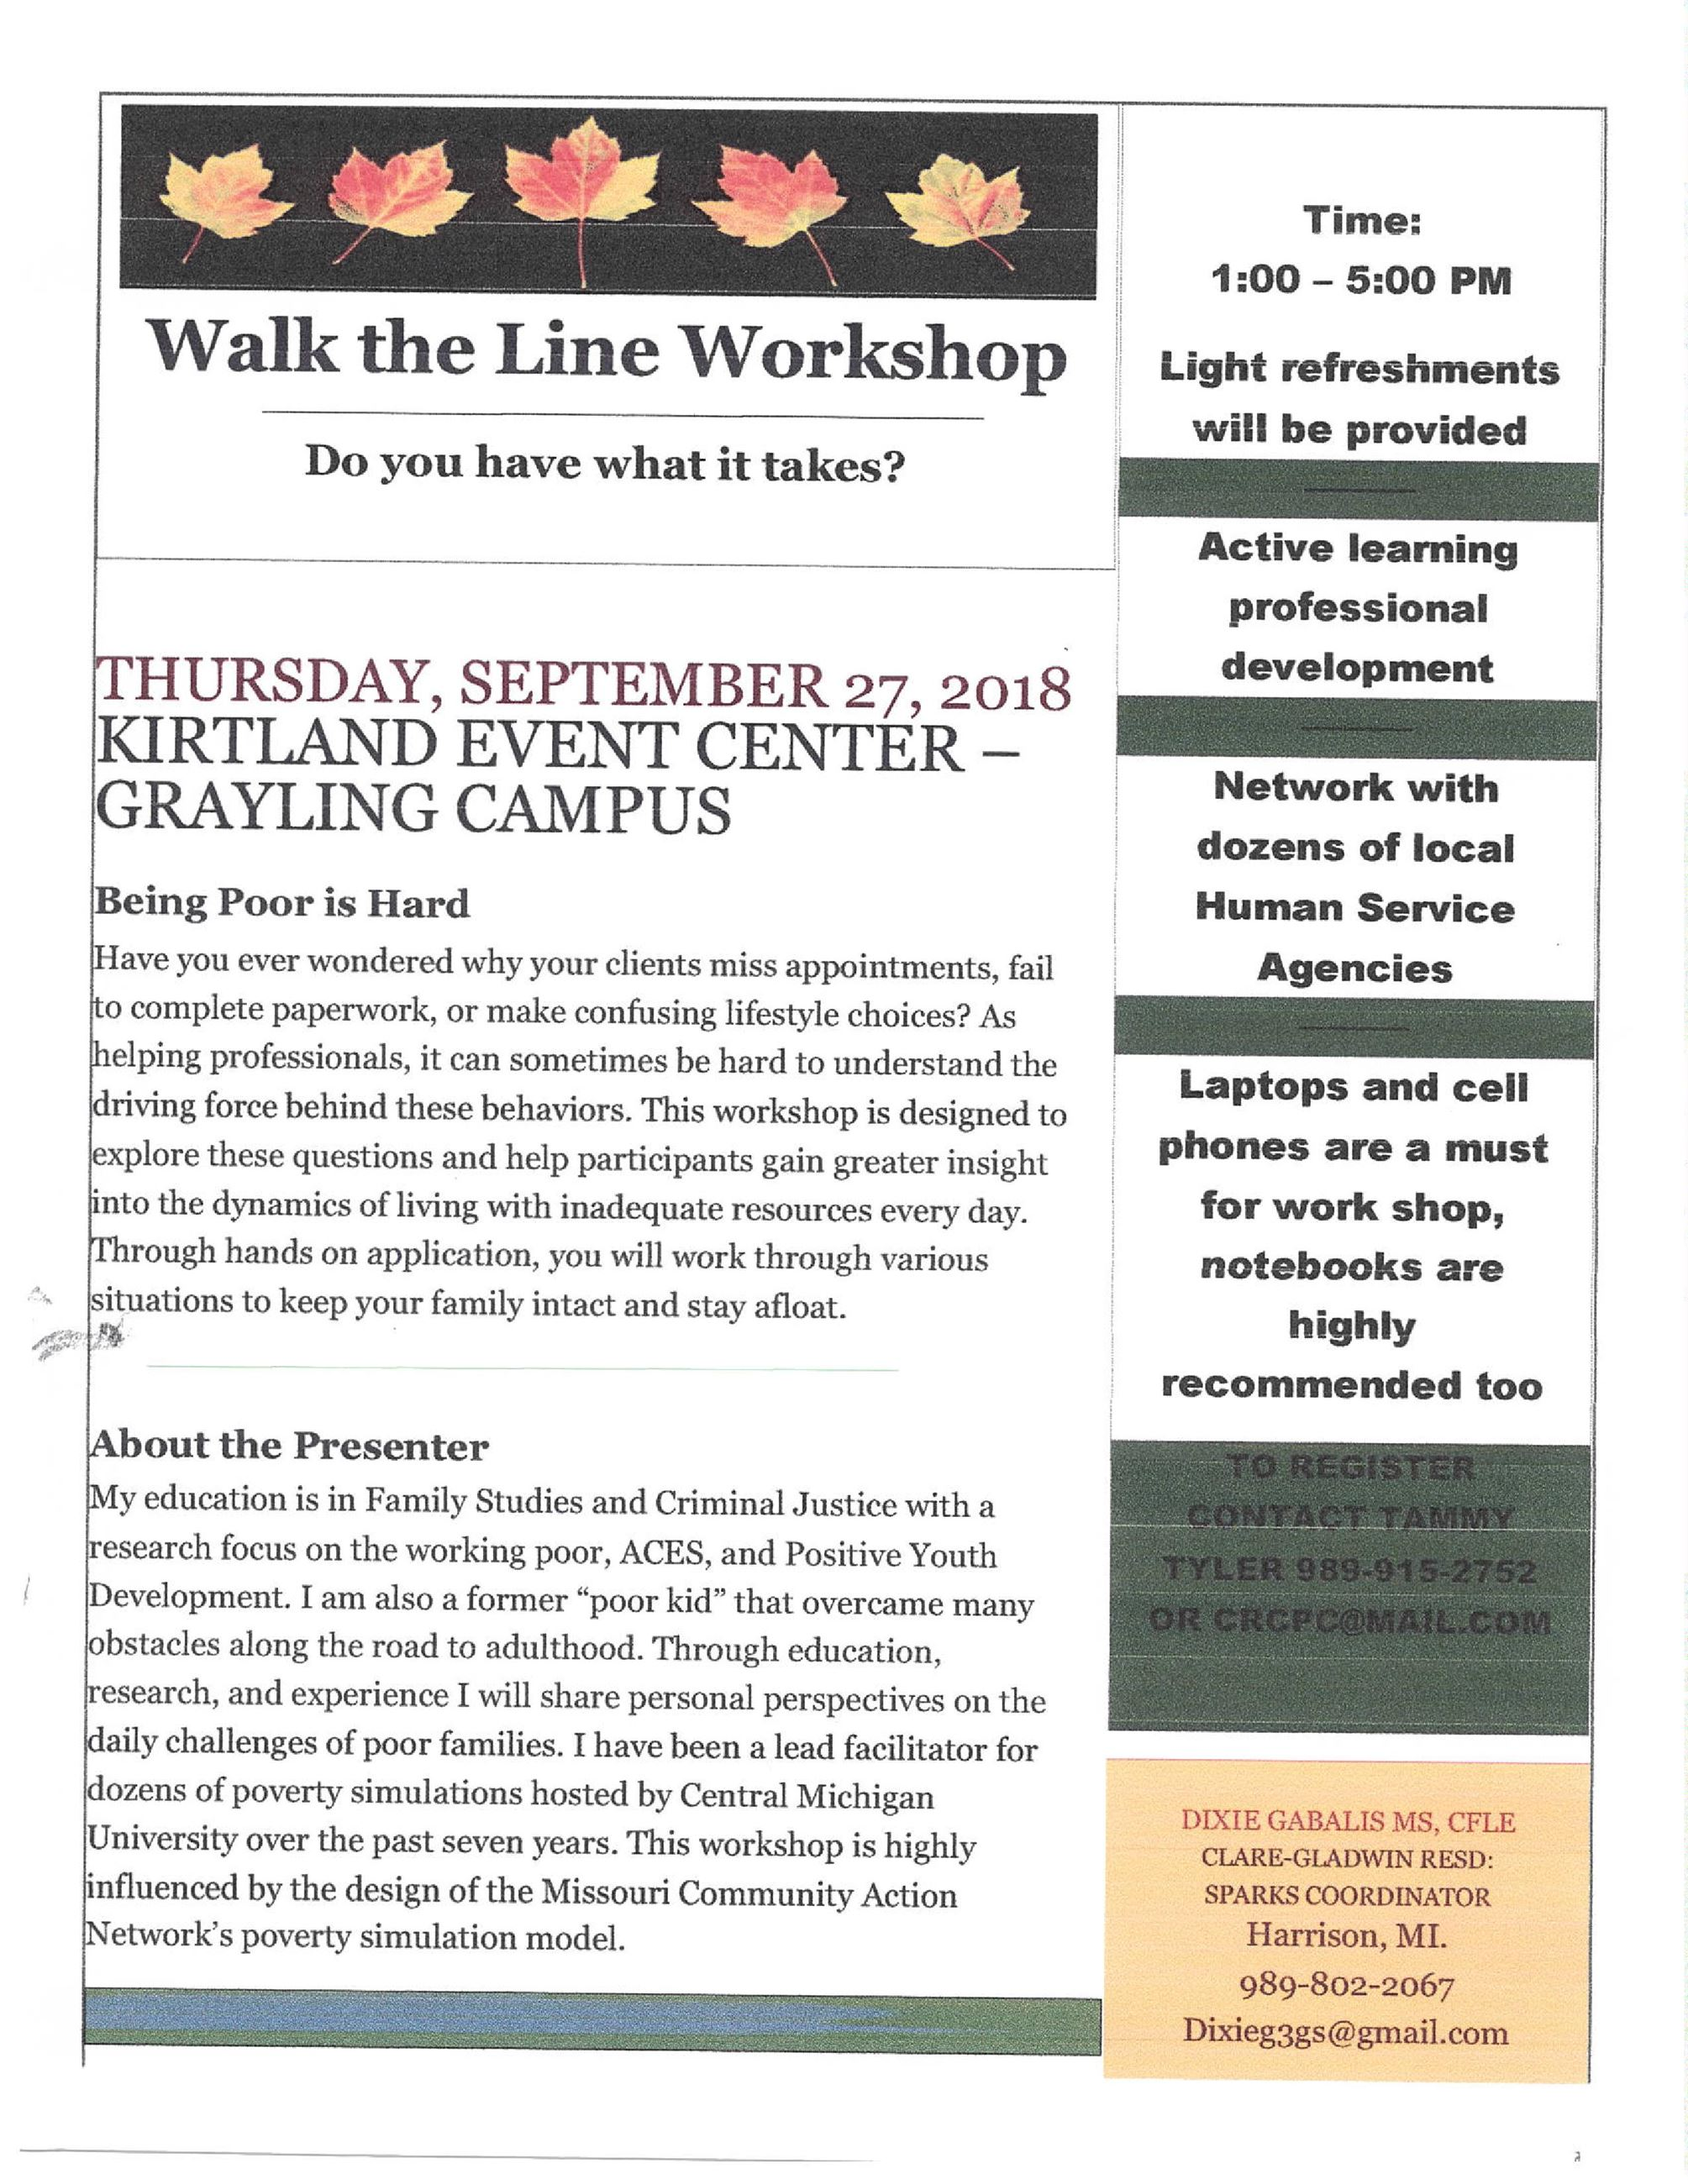 Walk the Line Workshop